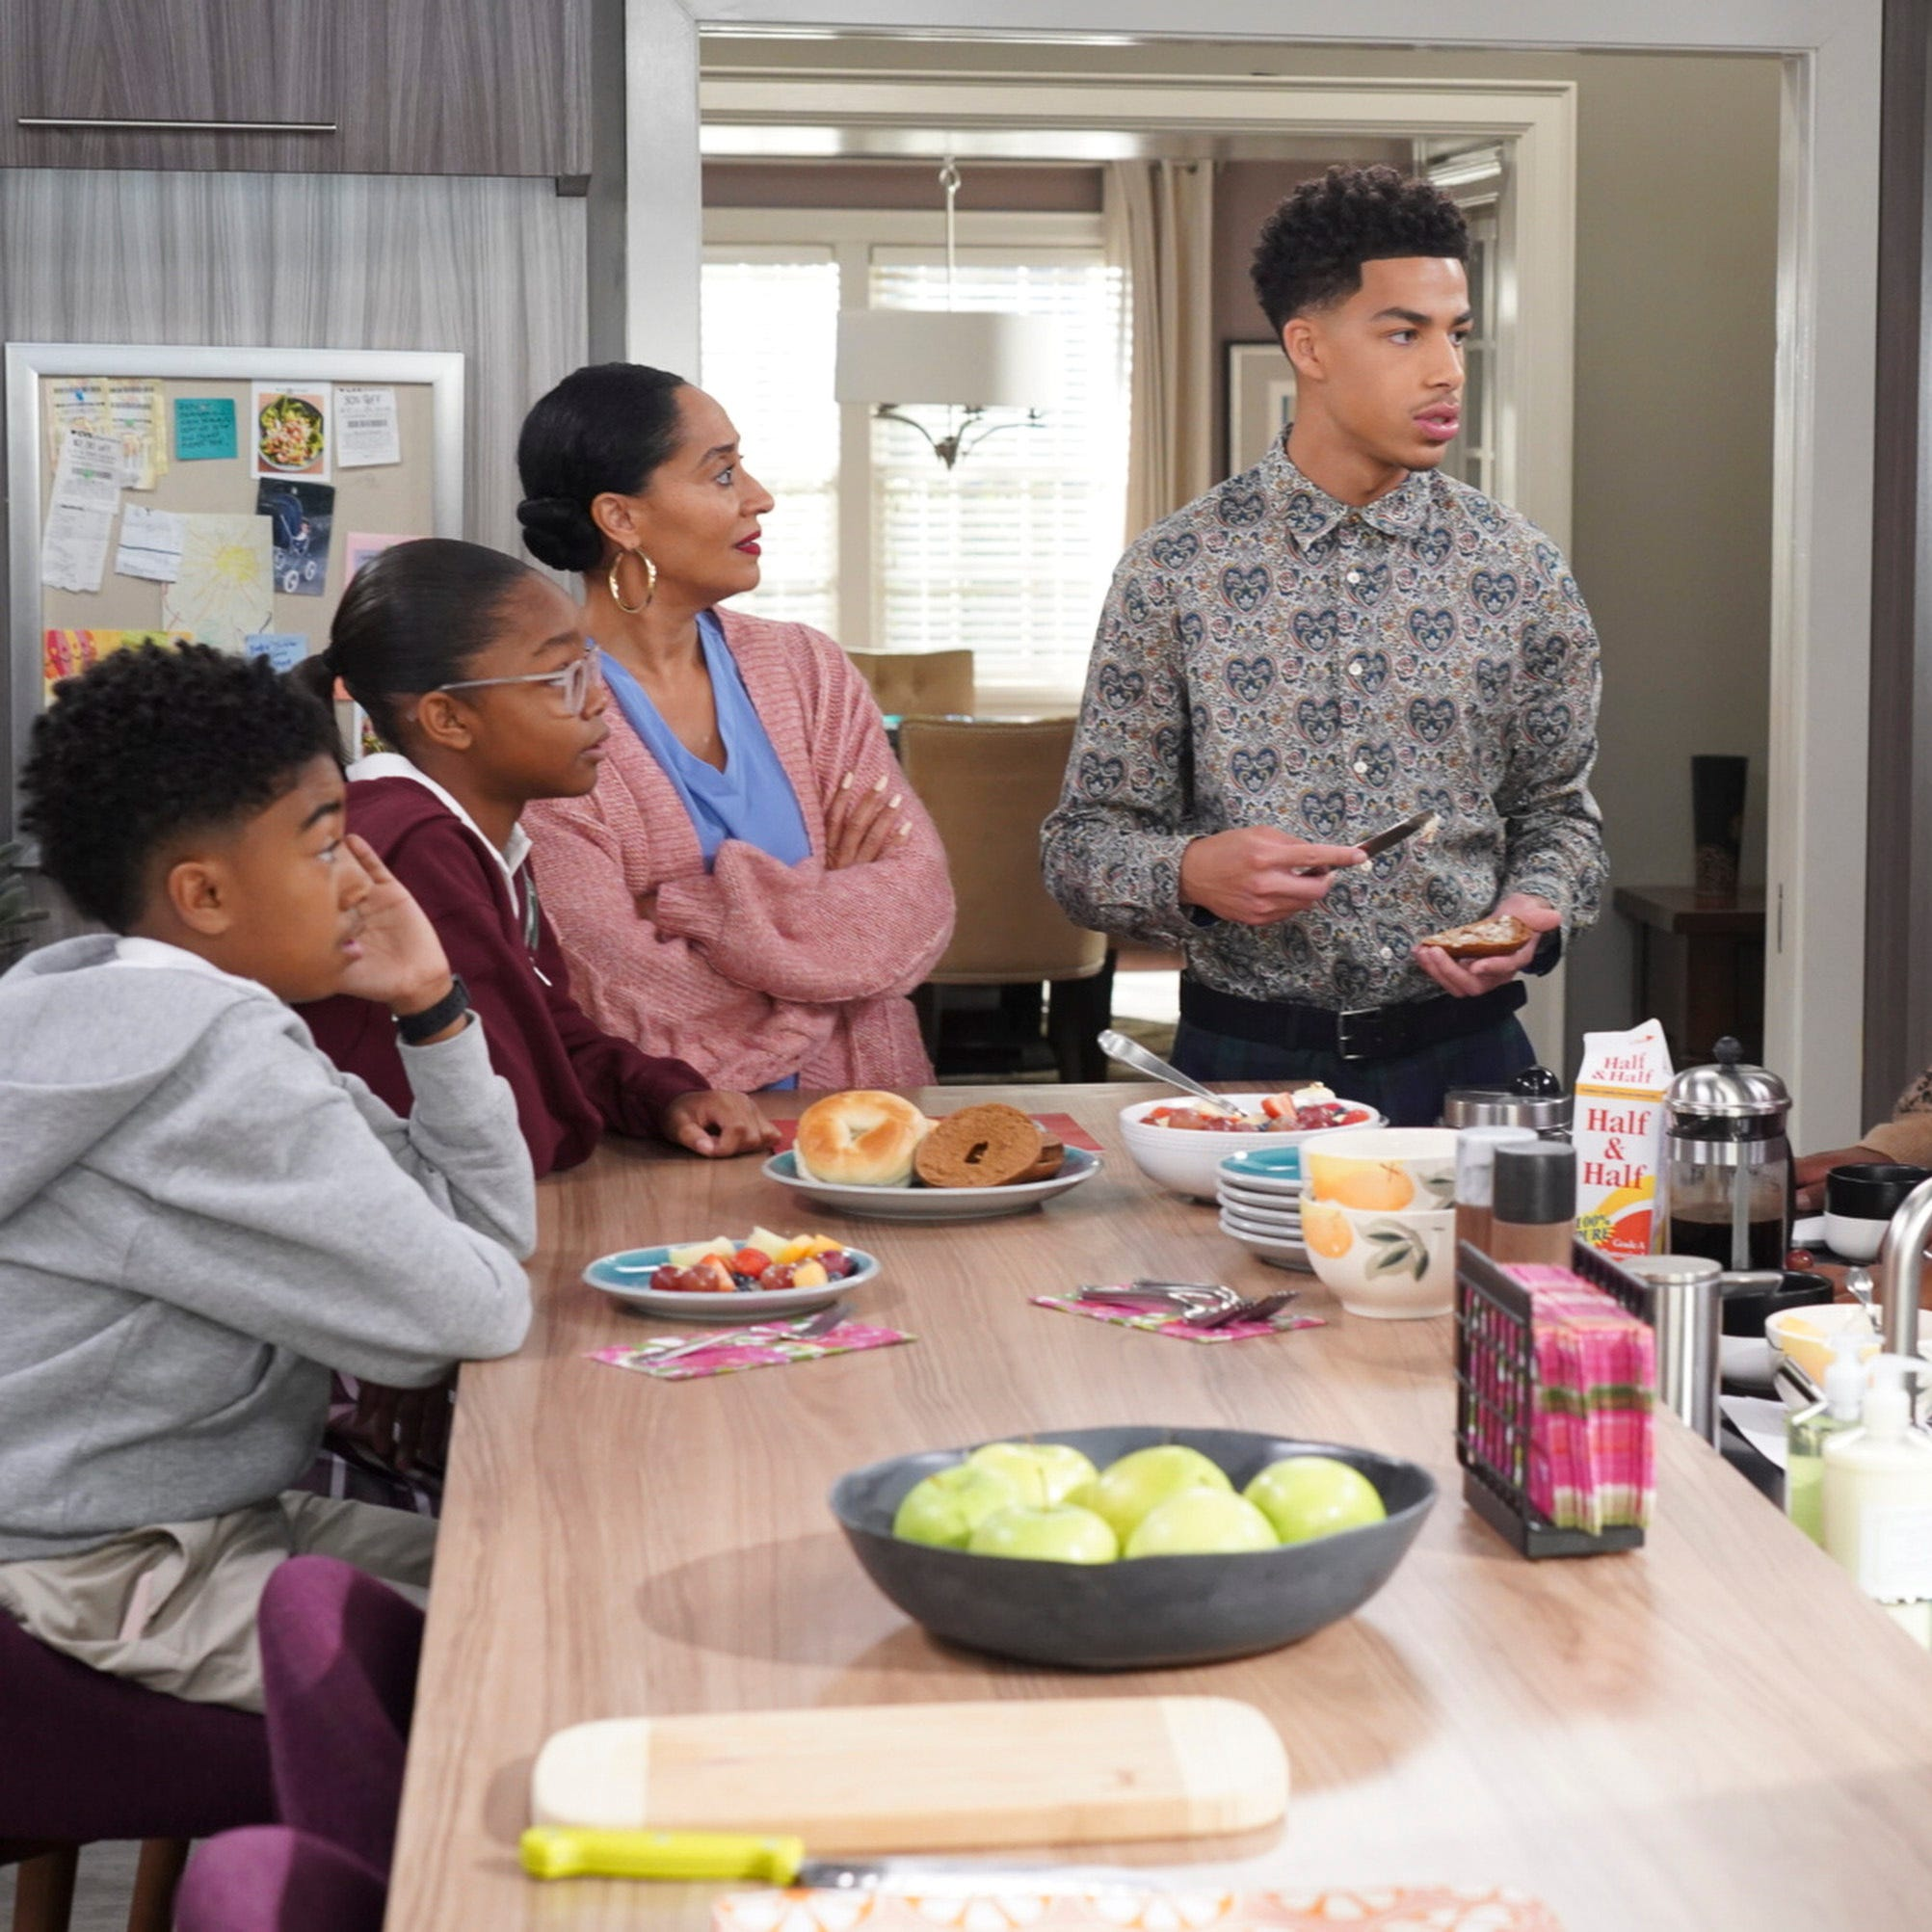 Spinoff of ABC's 'black-ish' to focus on mixed-race issues